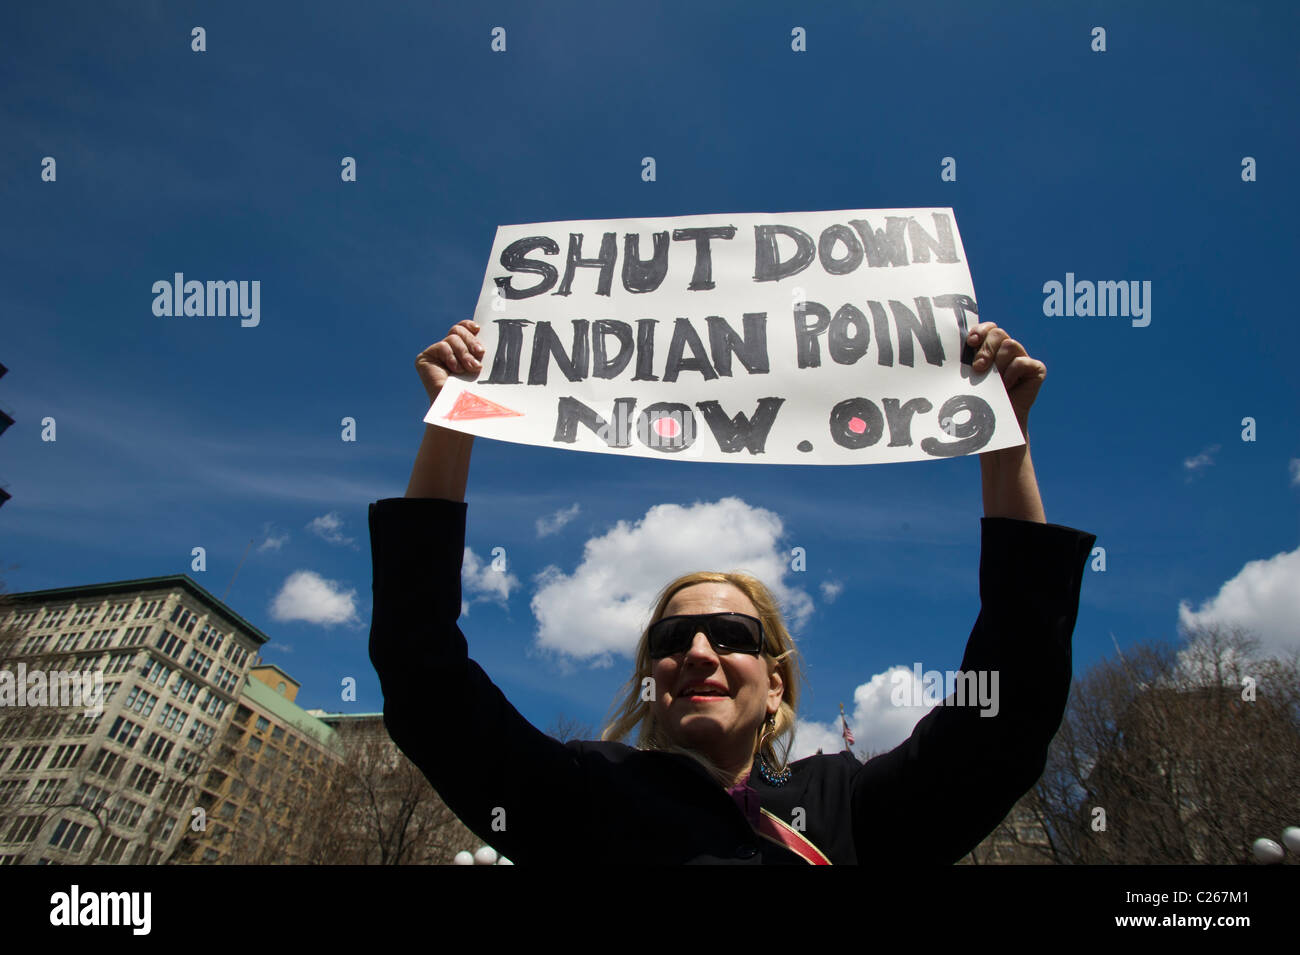 Activists from the newly formed 'Shut Down Indian Point Now!' protest in Union Square Park in New York - Stock Image